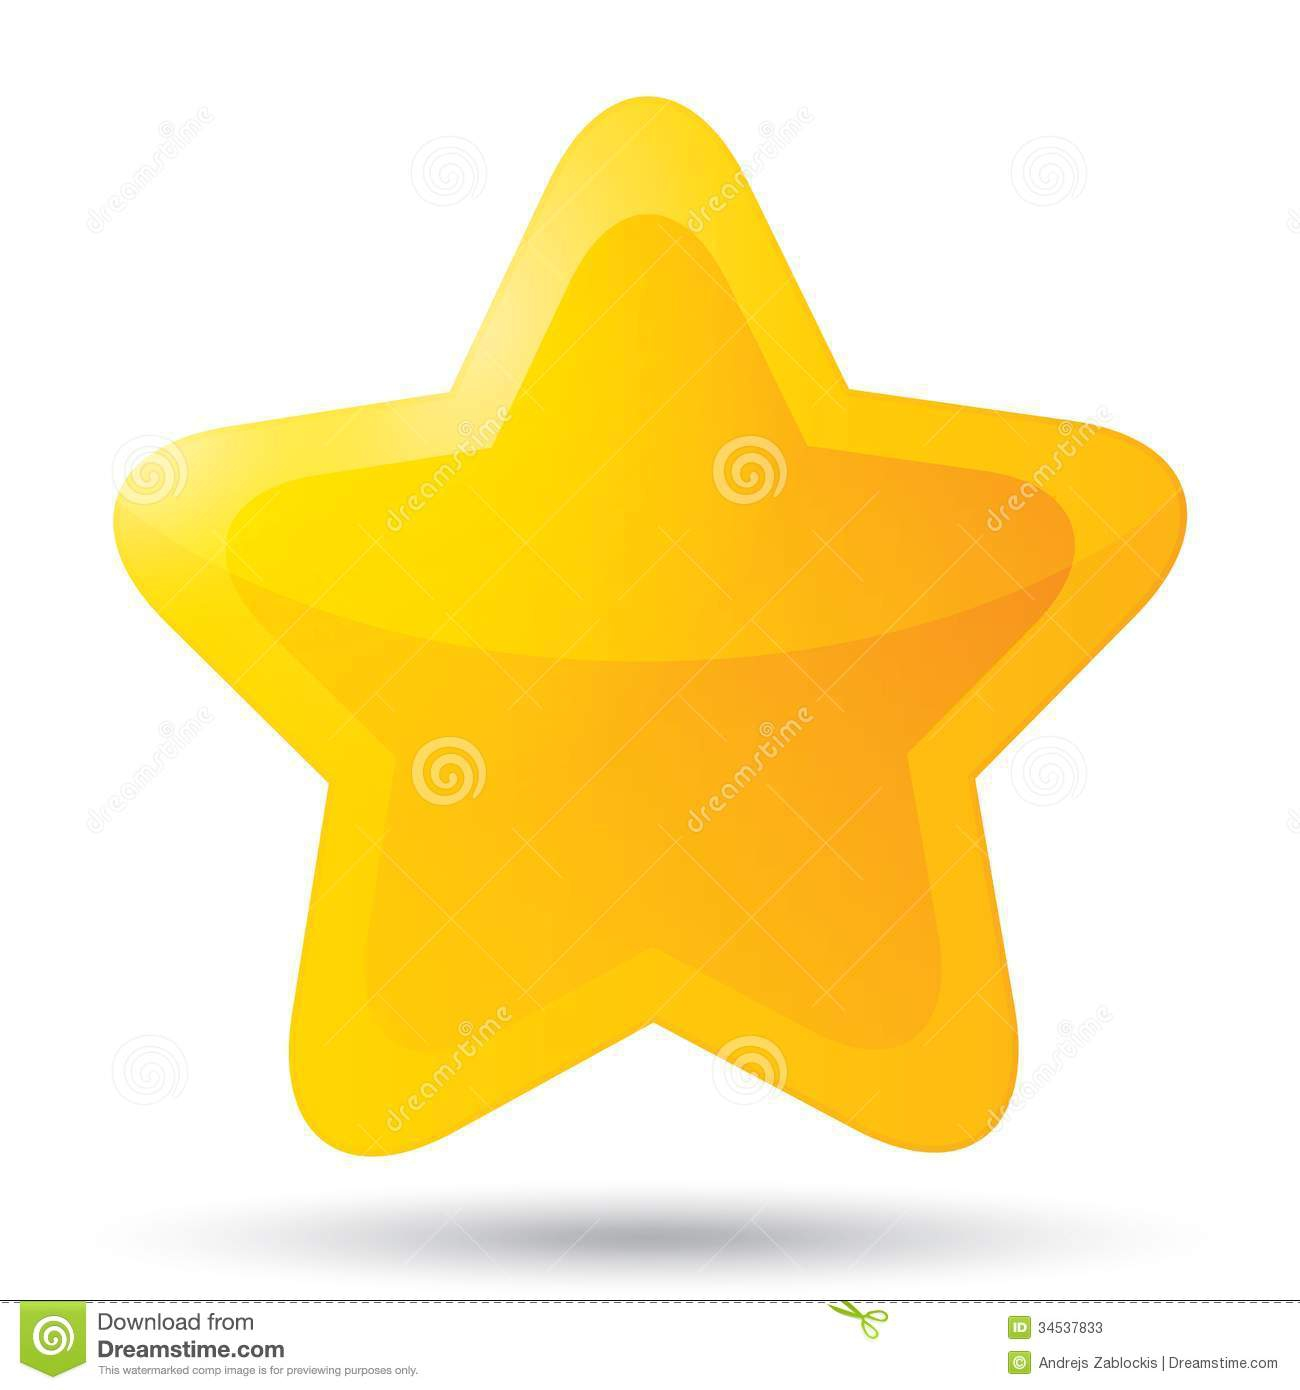 Rounded Star Clipart#2016421.